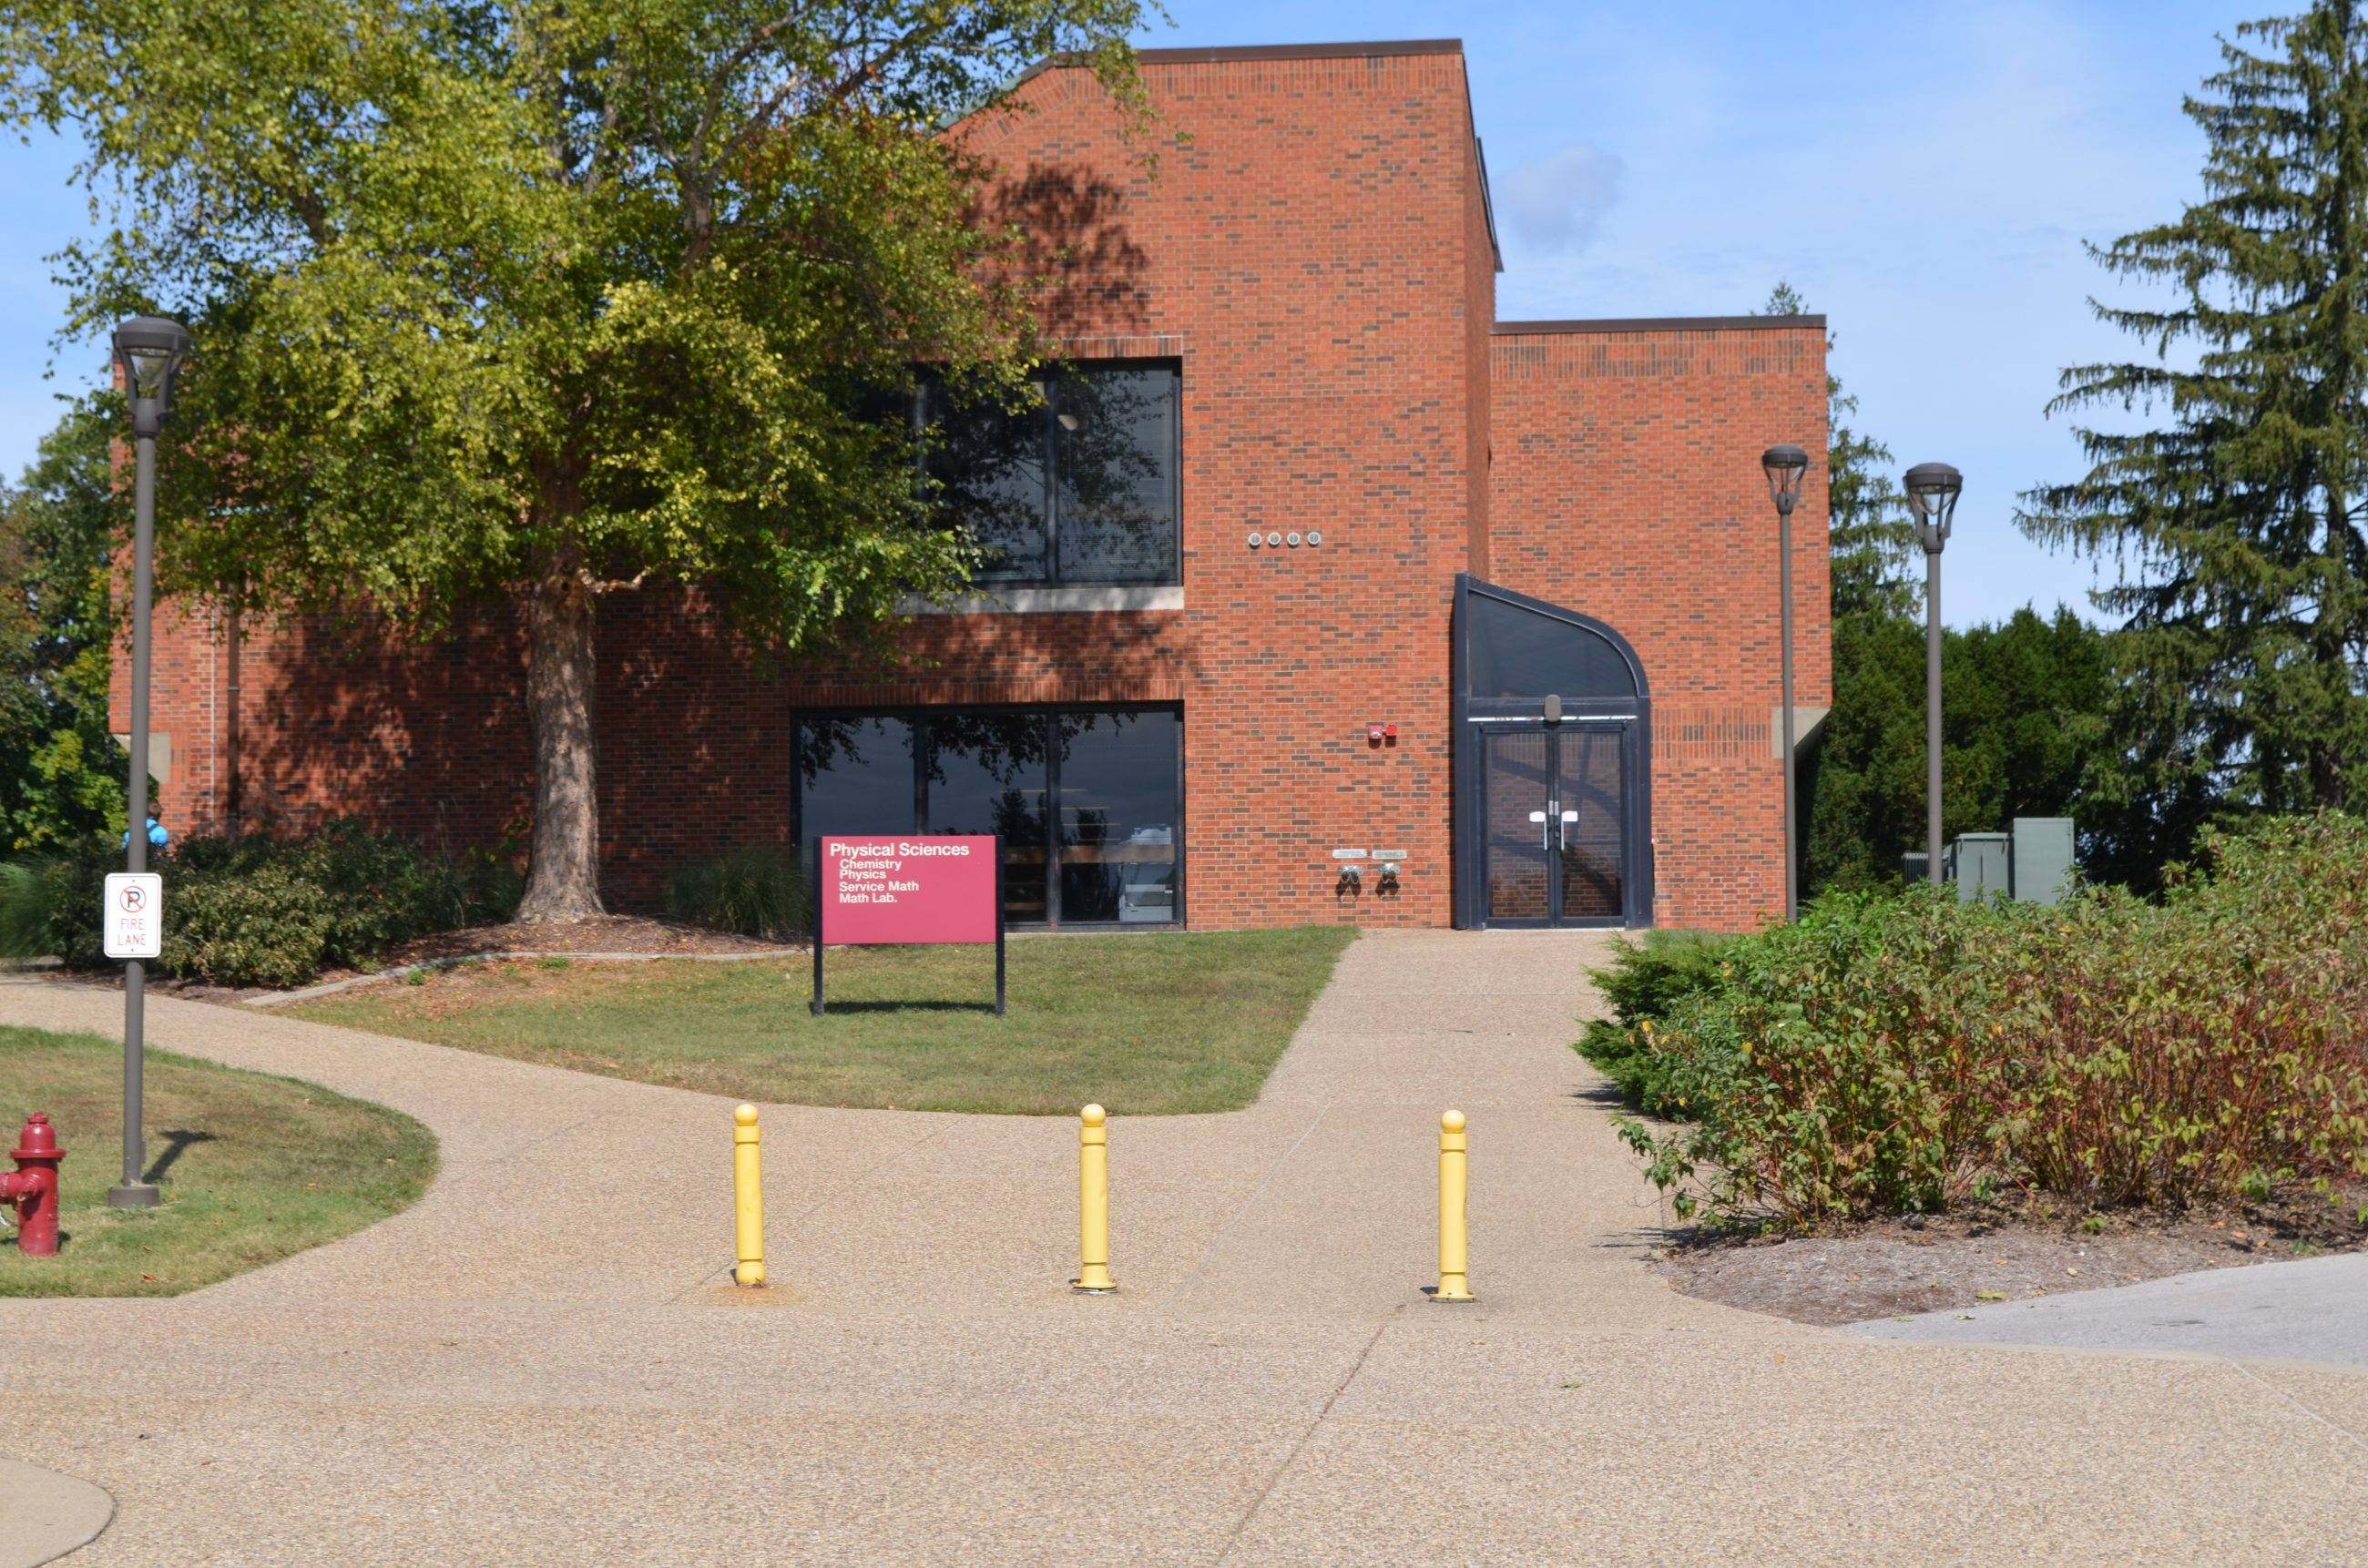 The front of the Physical Sciences Building